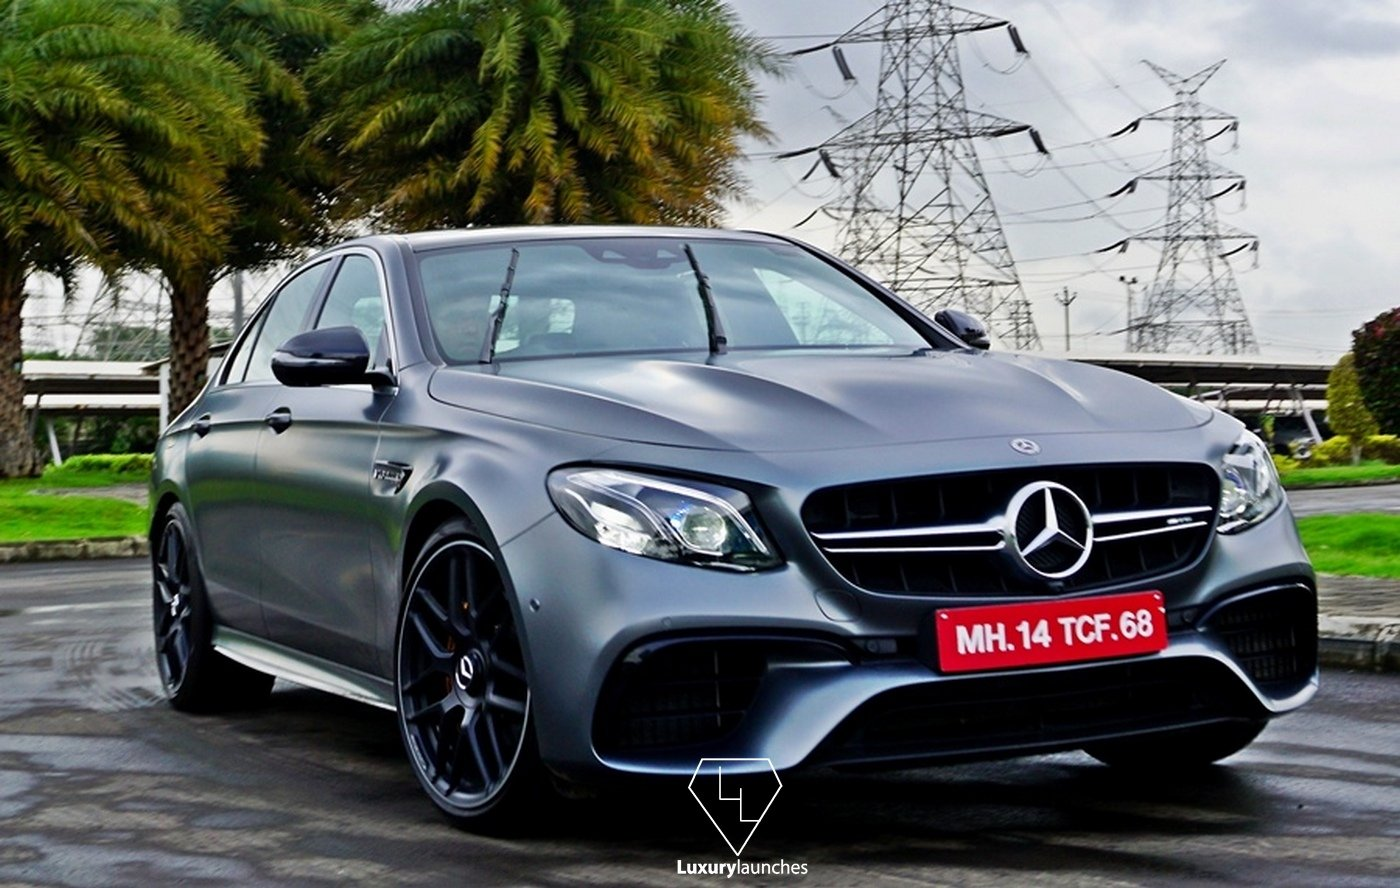 Review Of Mercedes Benz E63 S Amg India